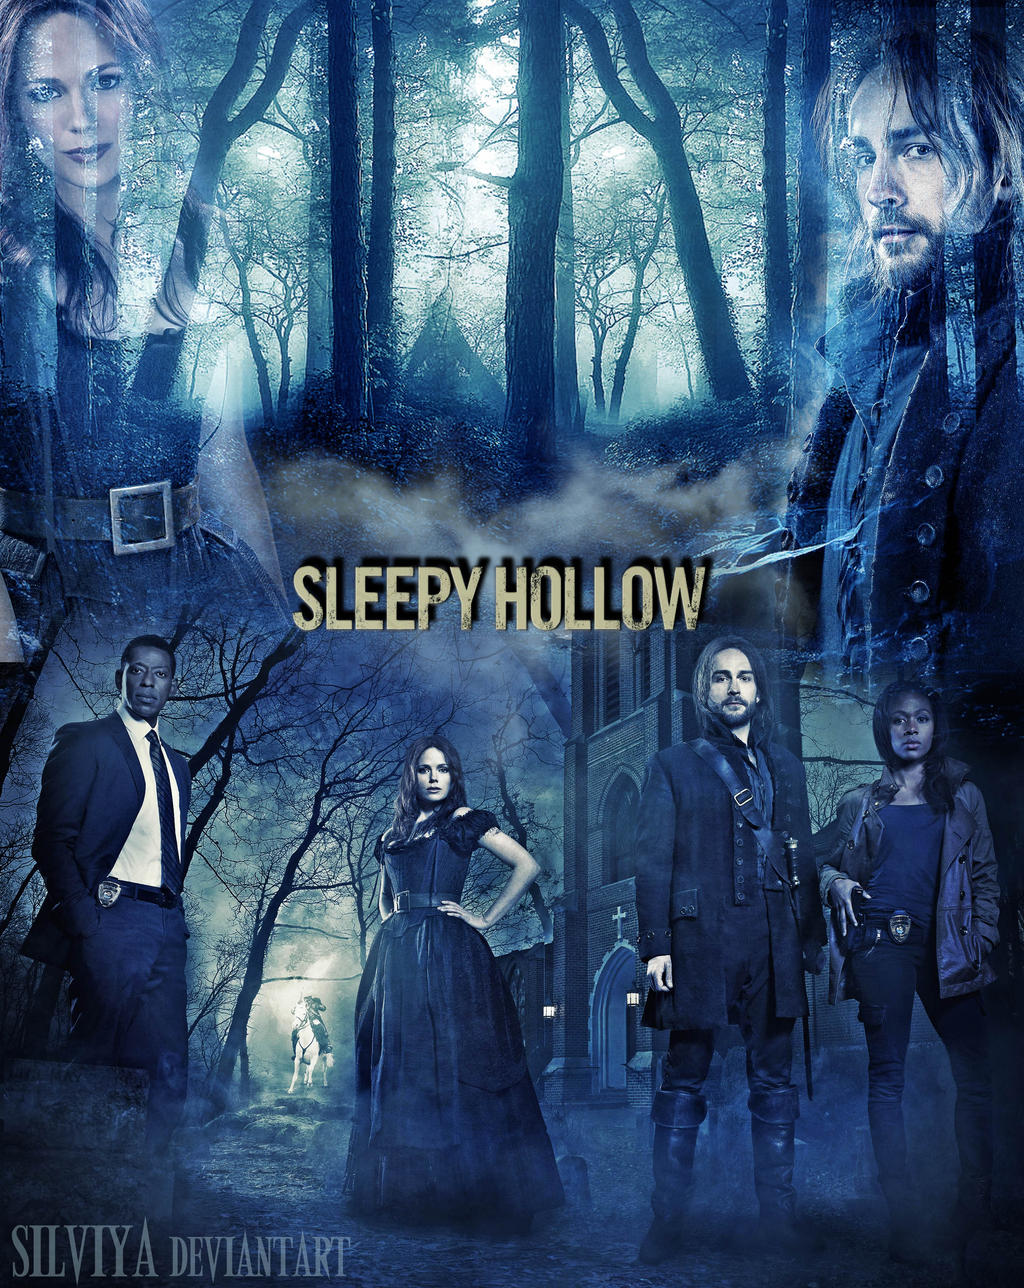 Sleepy Hollow by silviya